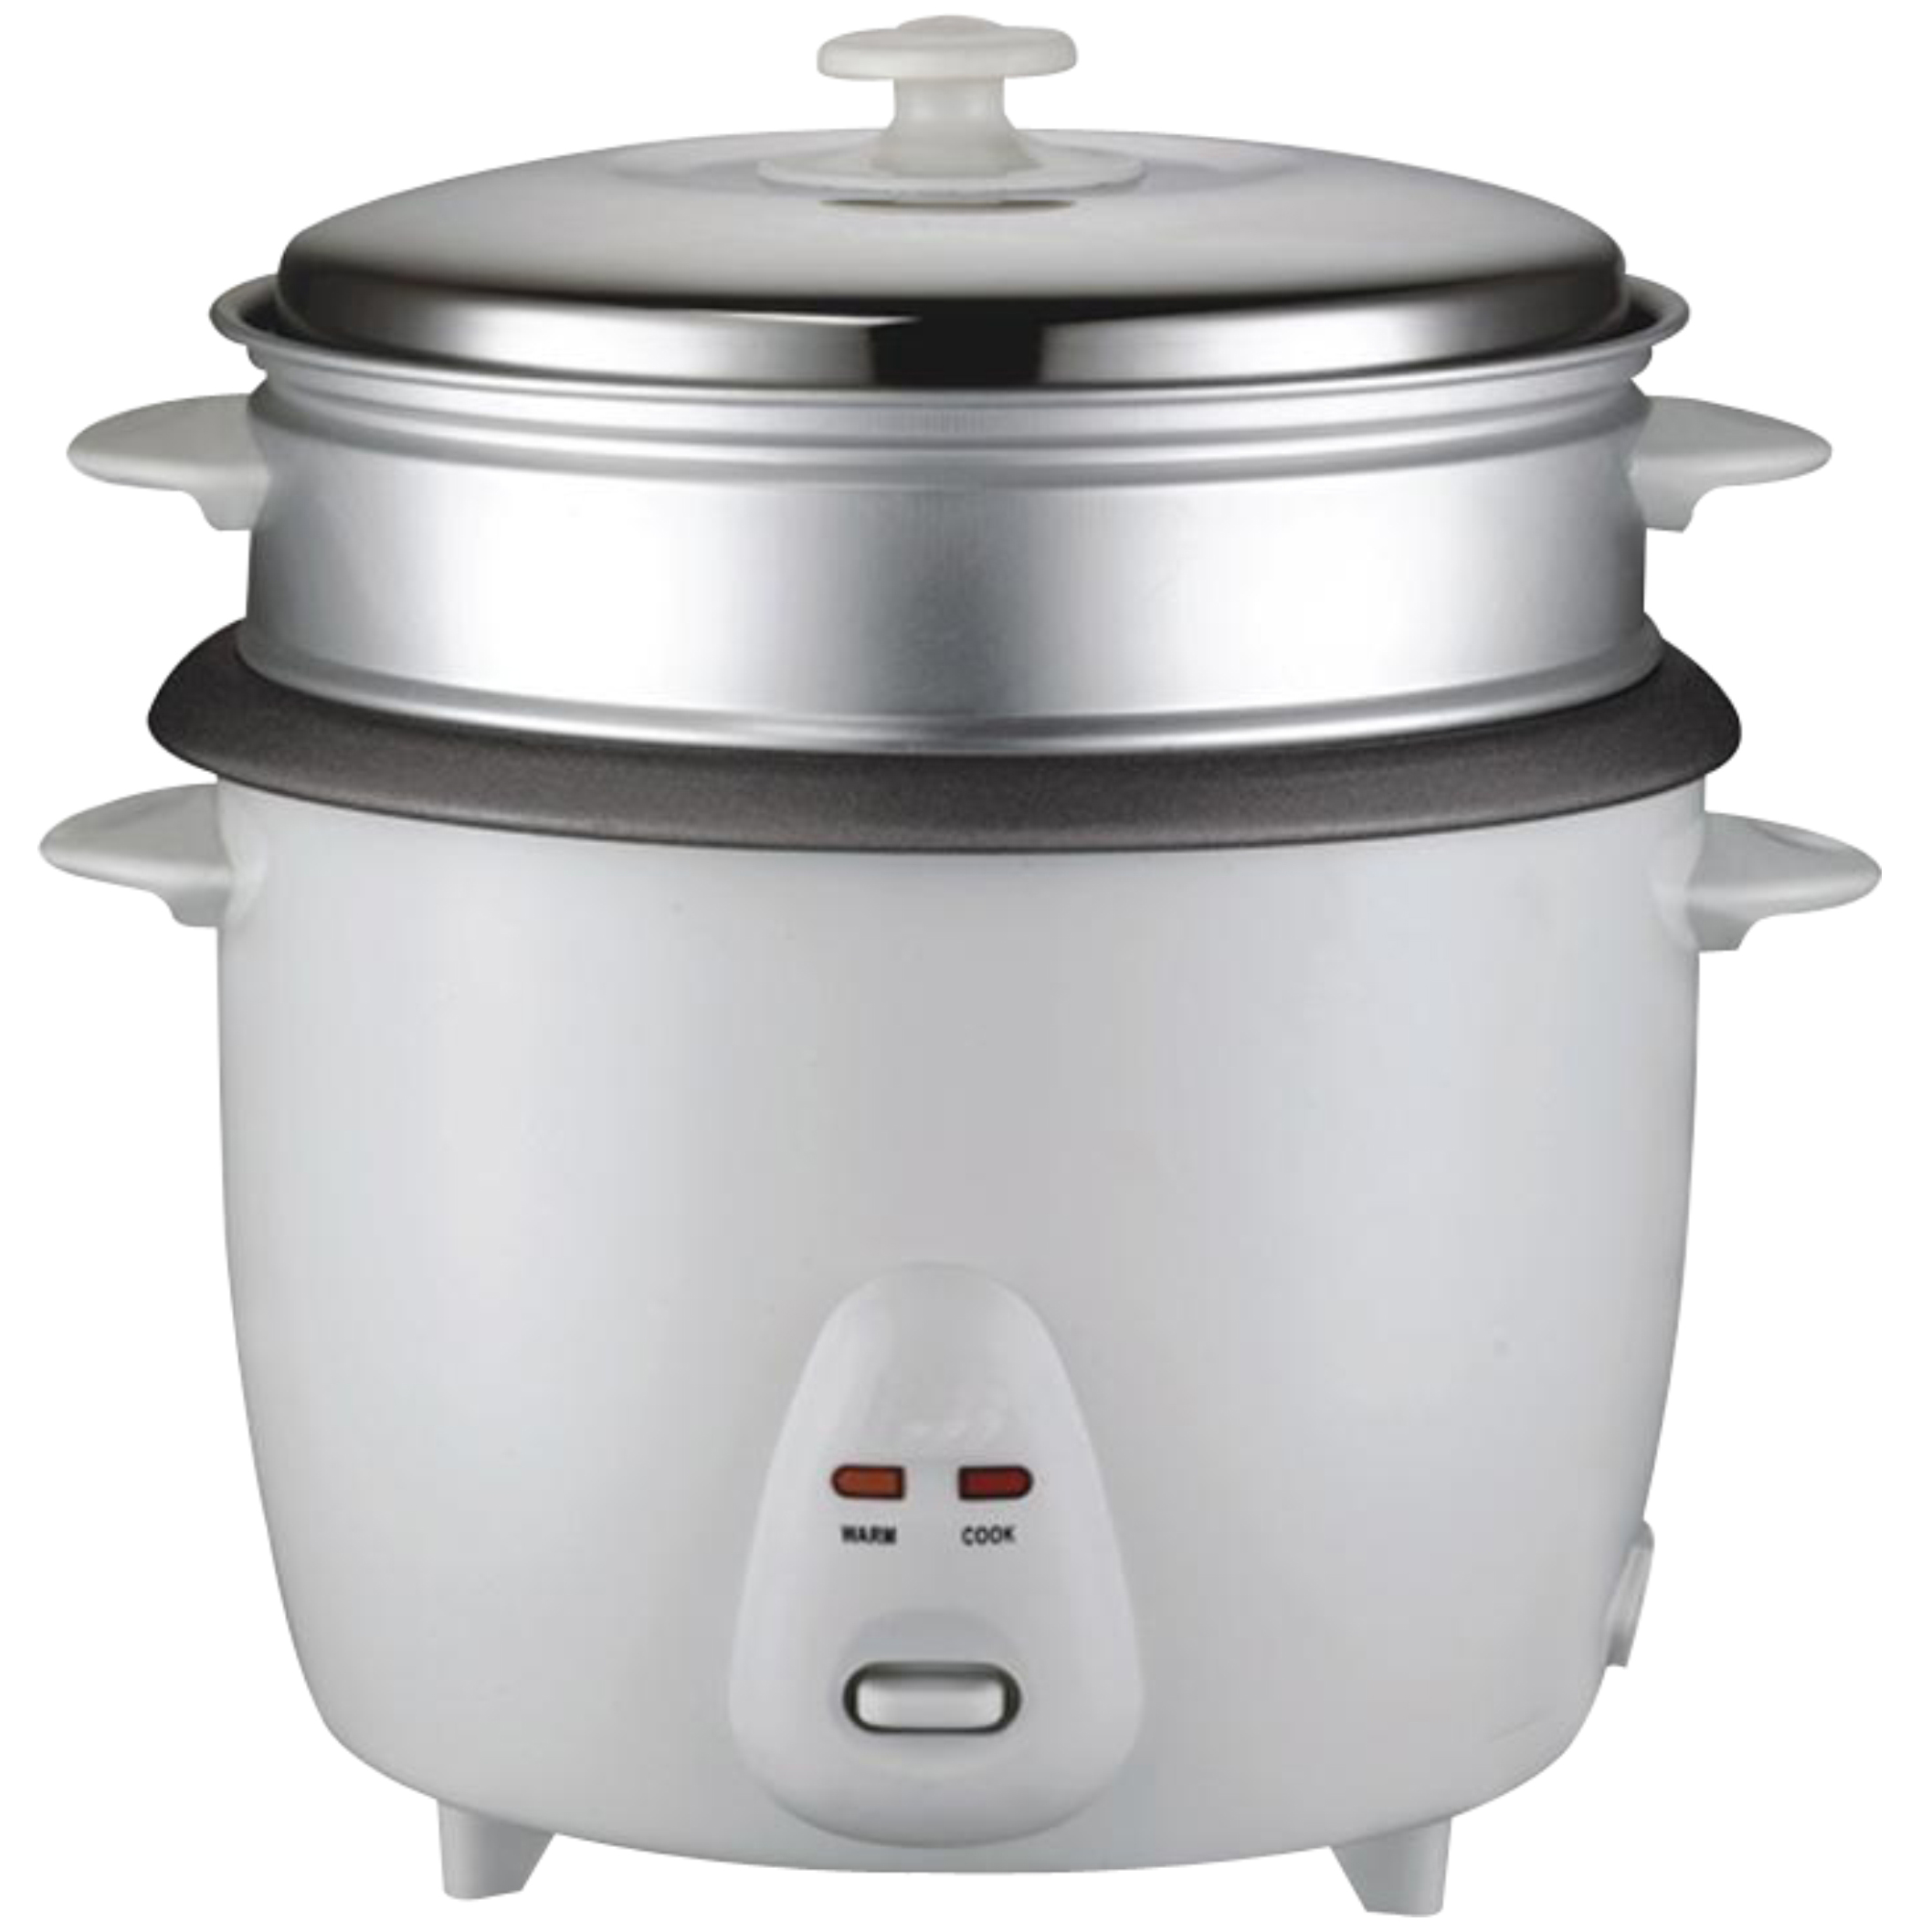 Drum rice cooker TPGB40-01